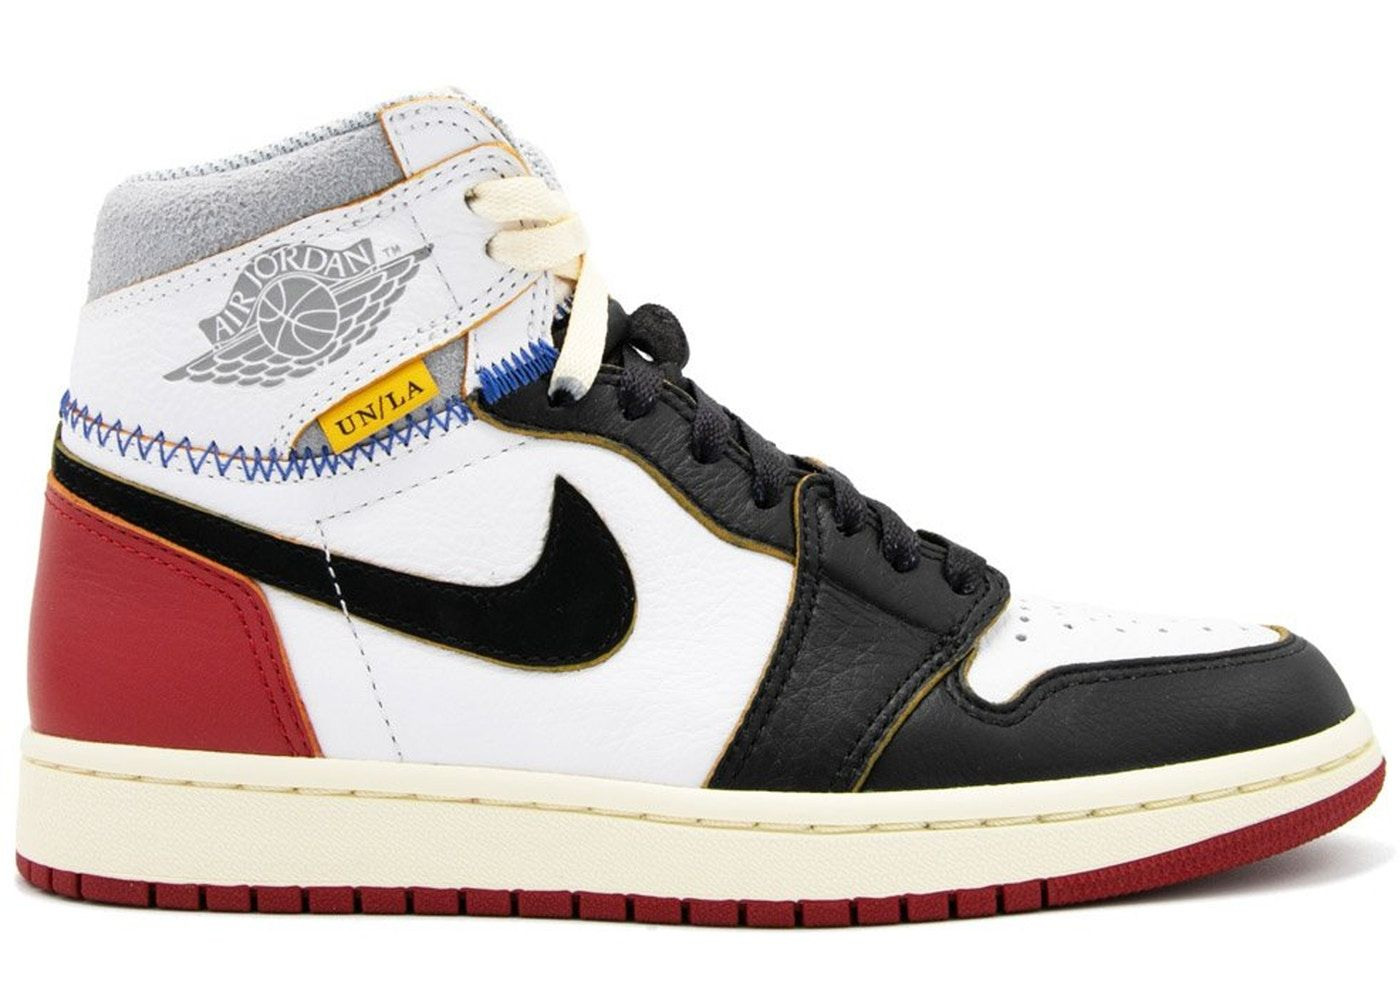 f79634d461c8 Check out the Jordan 1 Retro High Union Los Angeles Black Toe available on  StockX